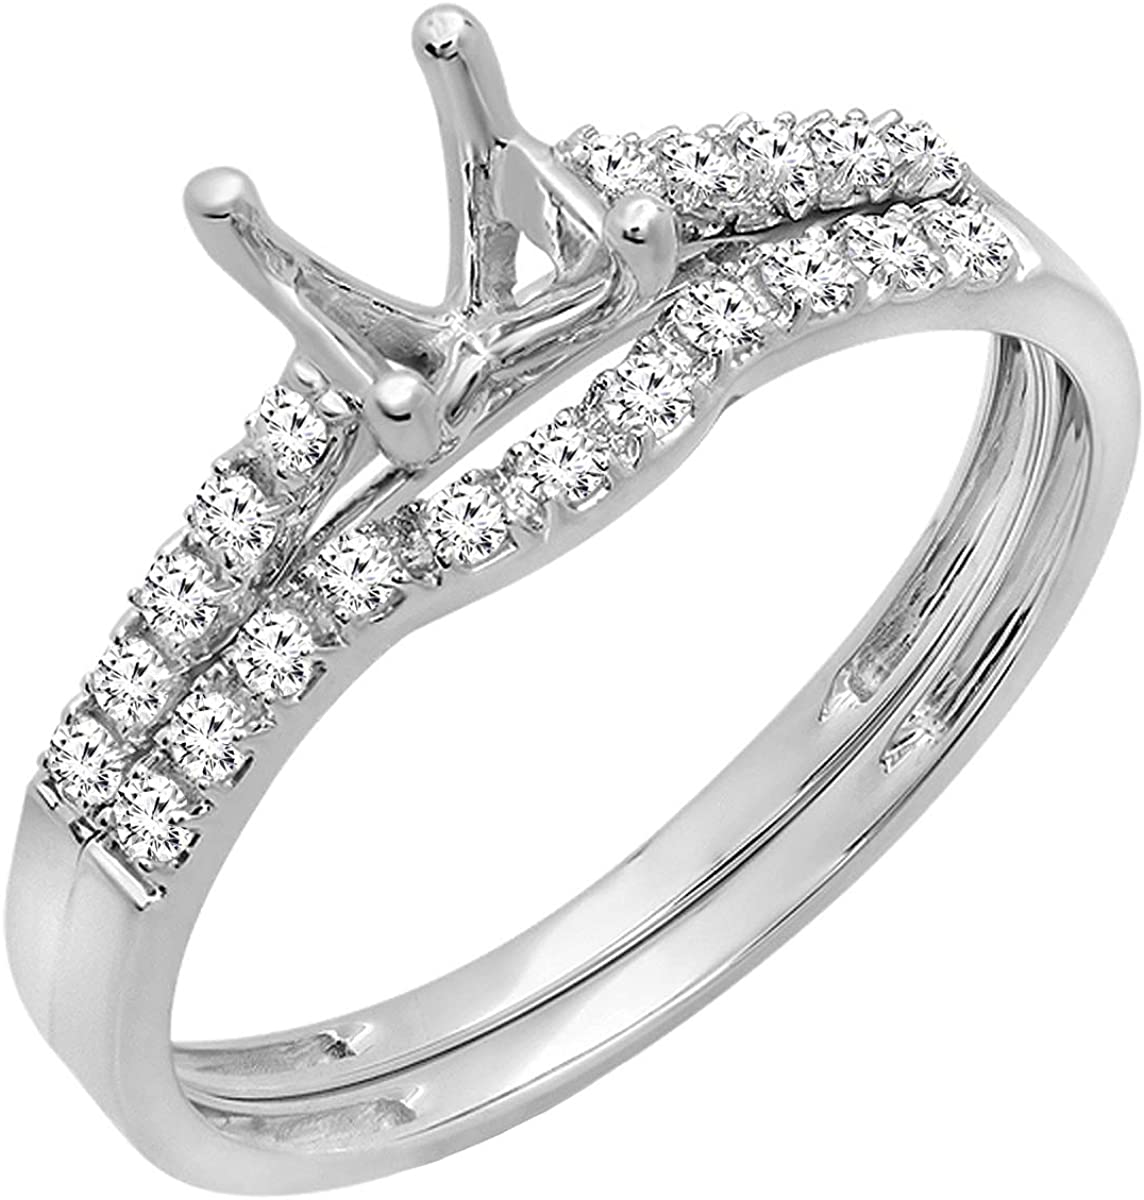 Dazzlingrock Collection 0.23 Carat (ctw) Round Diamond Semi Mount Bridal Engagement Ring Set 1/4 CT, Can be Fit 0.75 to 1.00 Ct. (5.8 MM to 6.5 MM) Round Center Stone, 10K Gold